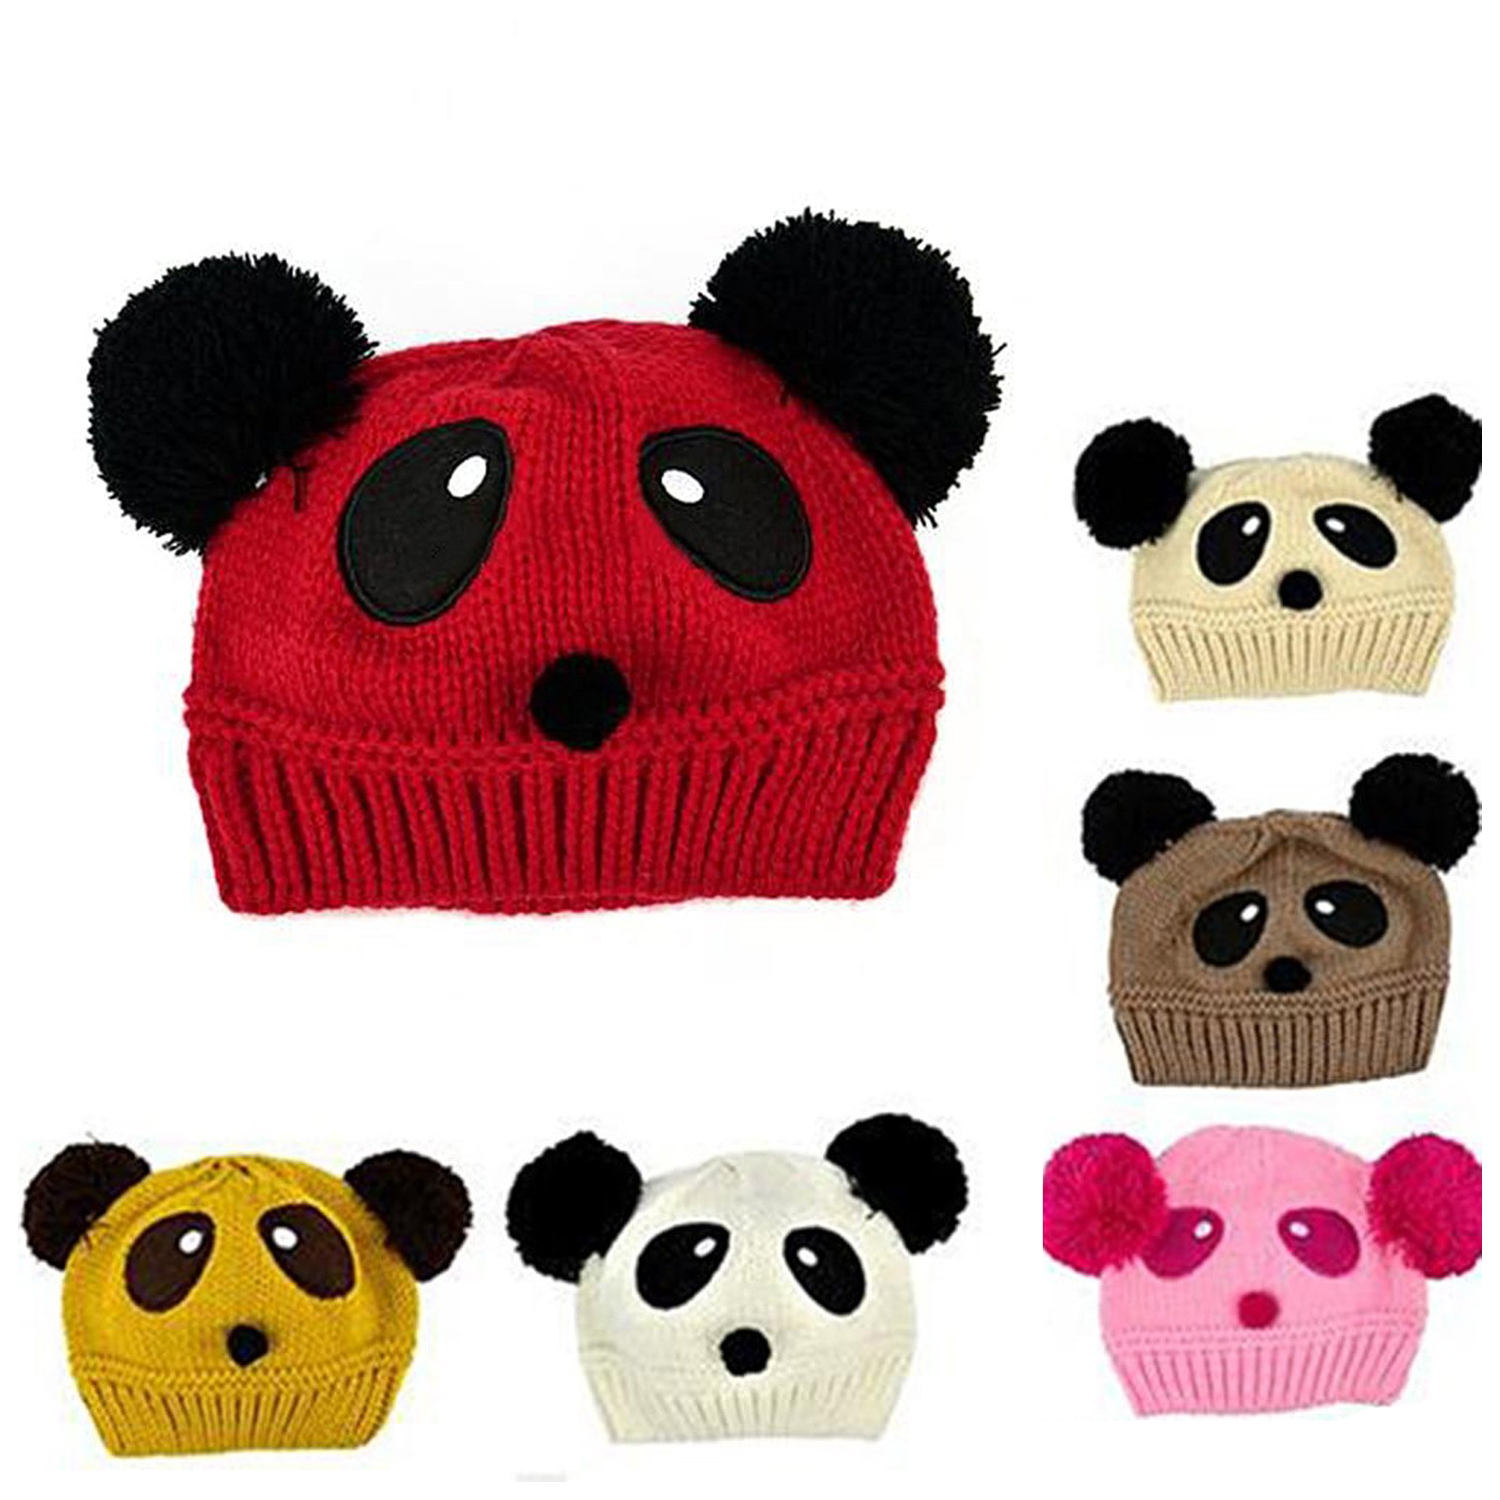 5x chapeau de panda mignon pour bebe unisexe en hiver chaud tricote p4v3 ebay. Black Bedroom Furniture Sets. Home Design Ideas